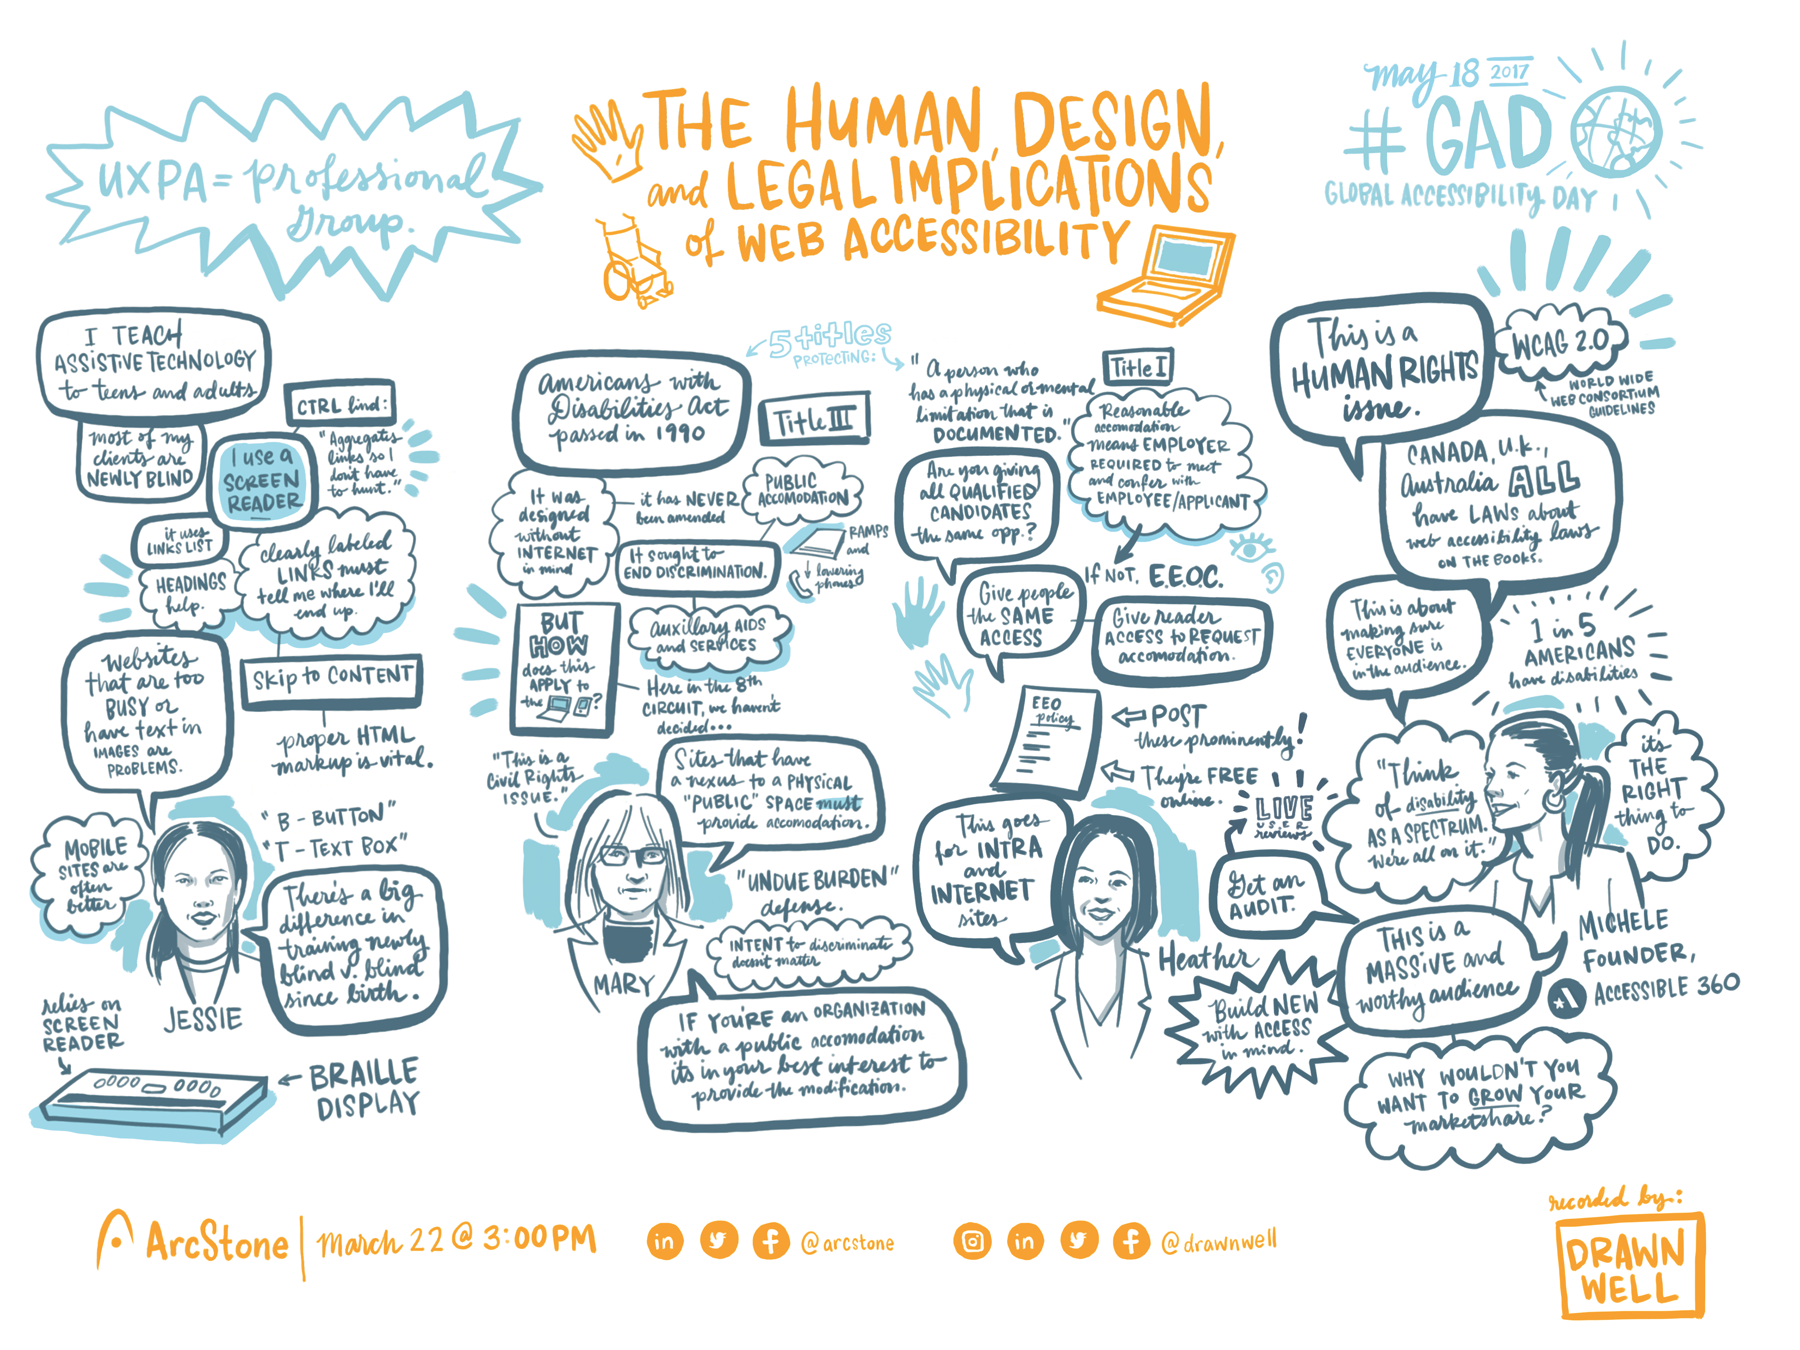 _The-Human,-Design,-and-Legal-Implications-of-Web-Accessibility